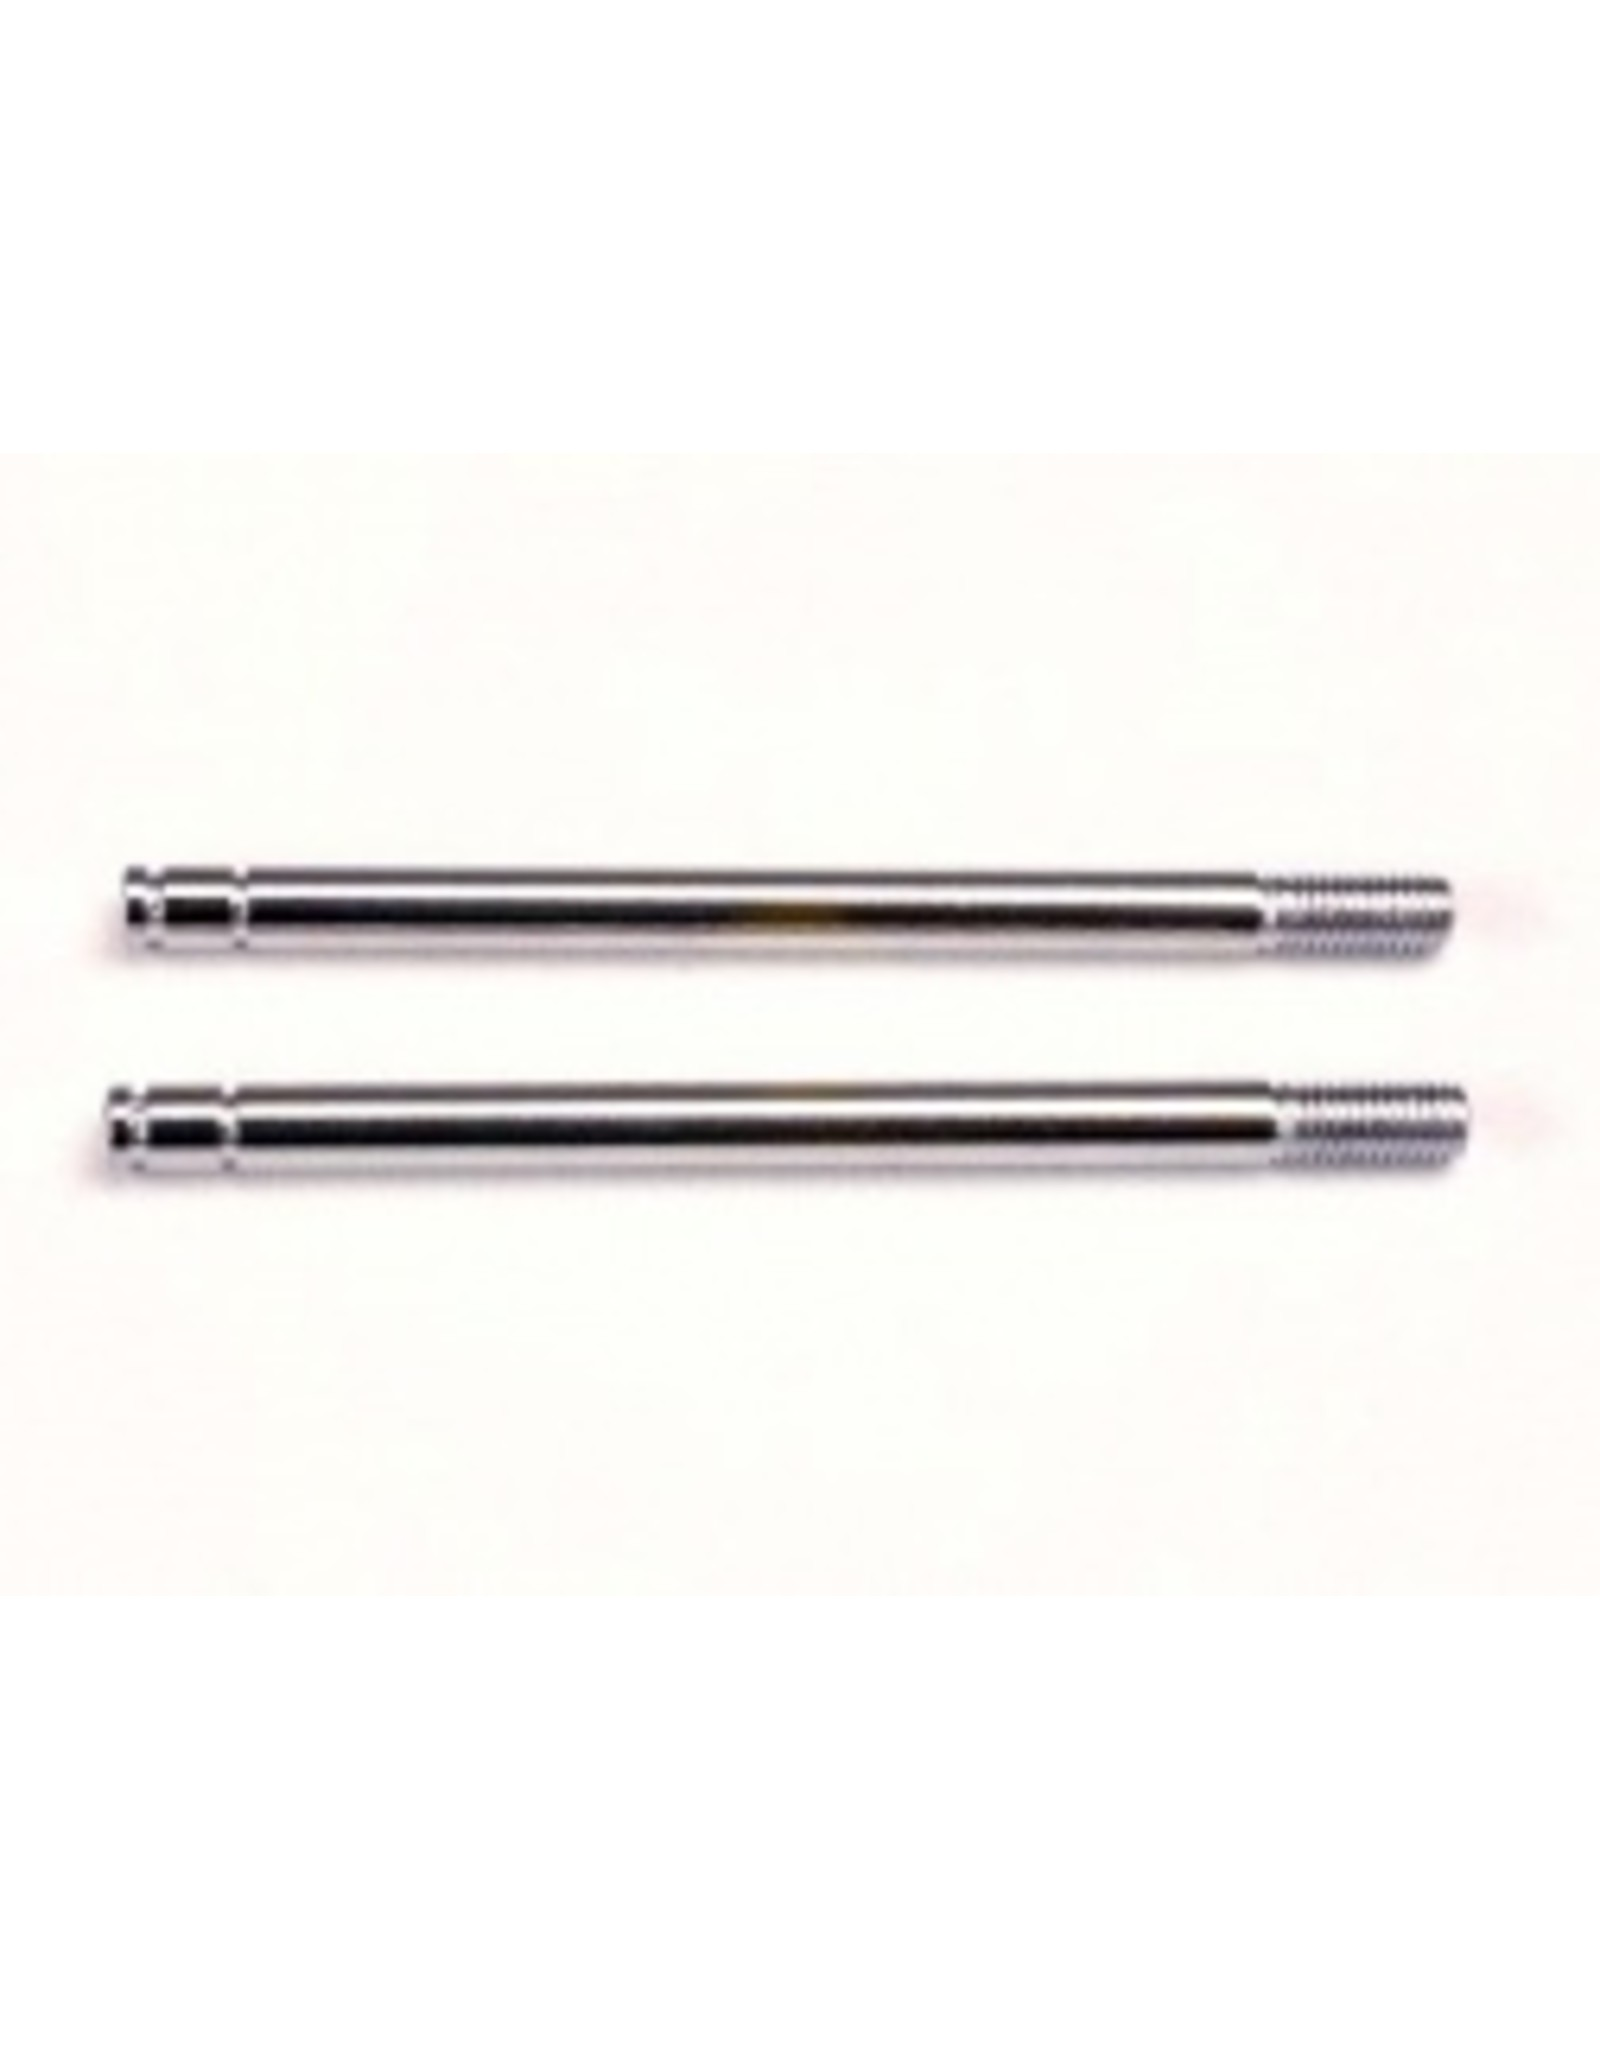 Traxxas CHROME SHOCK RODS (L) (2)  (TRA1664)